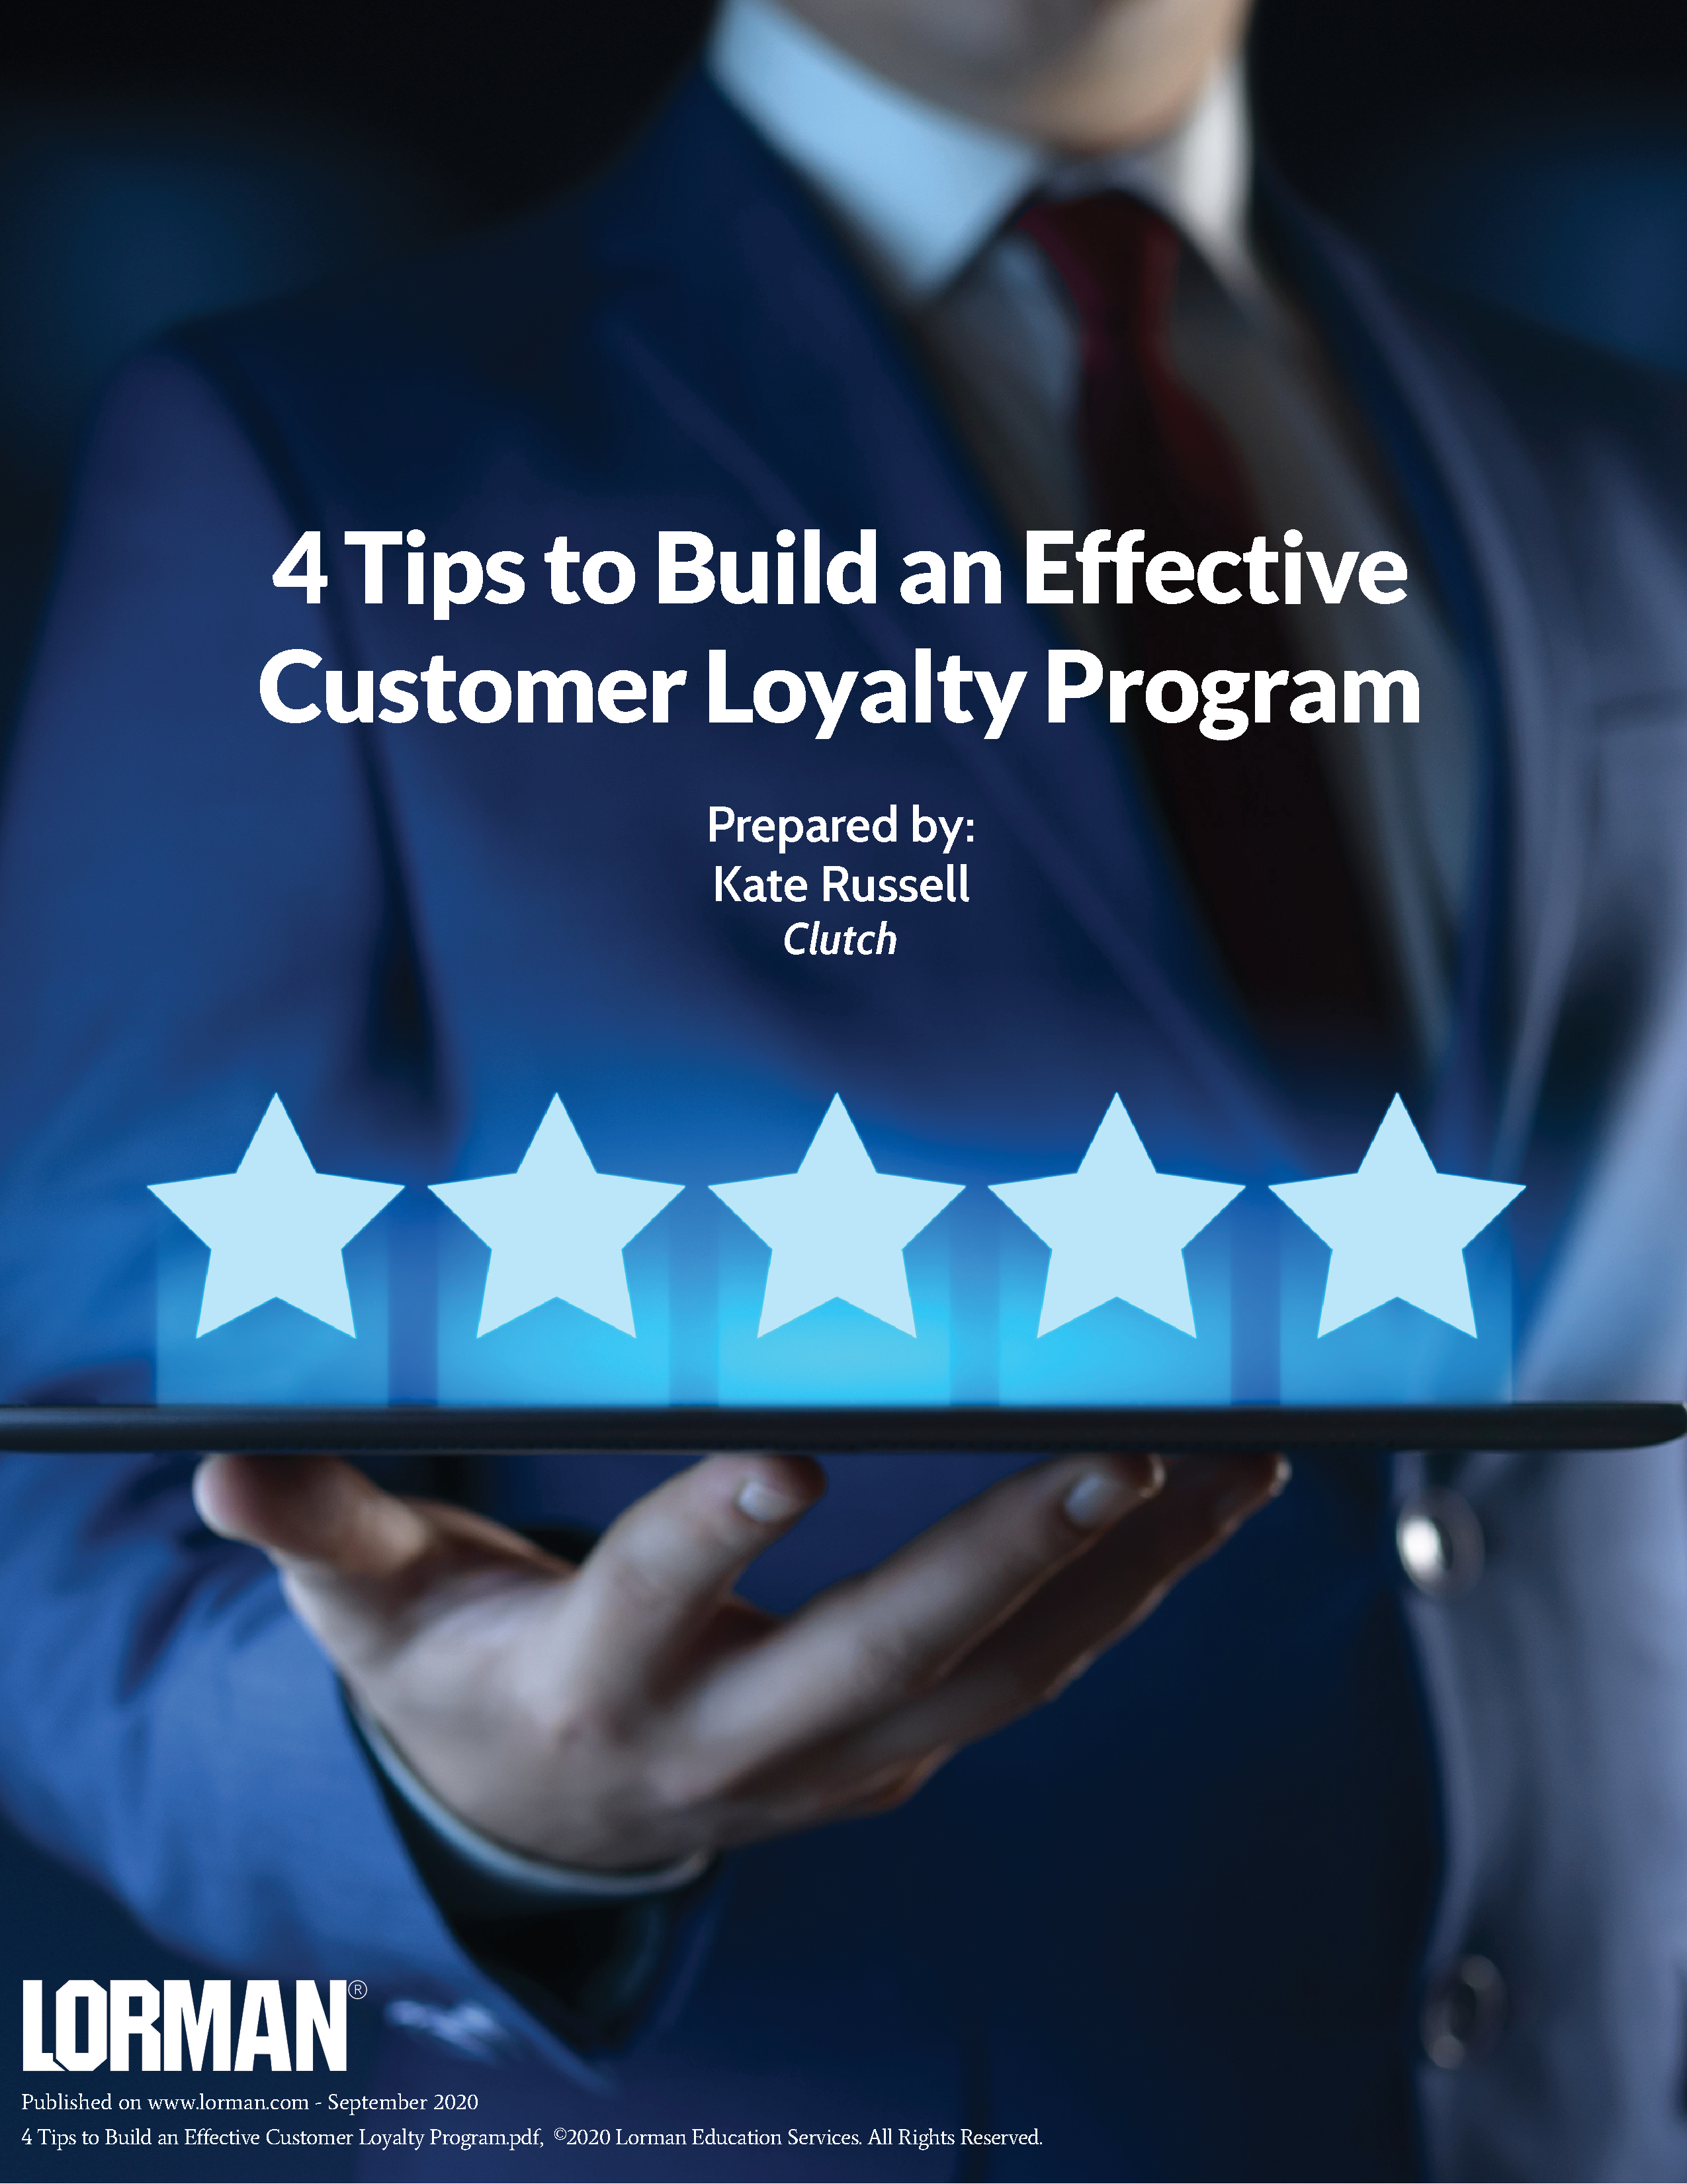 4 Tips to Build an Effective Customer Loyalty Program